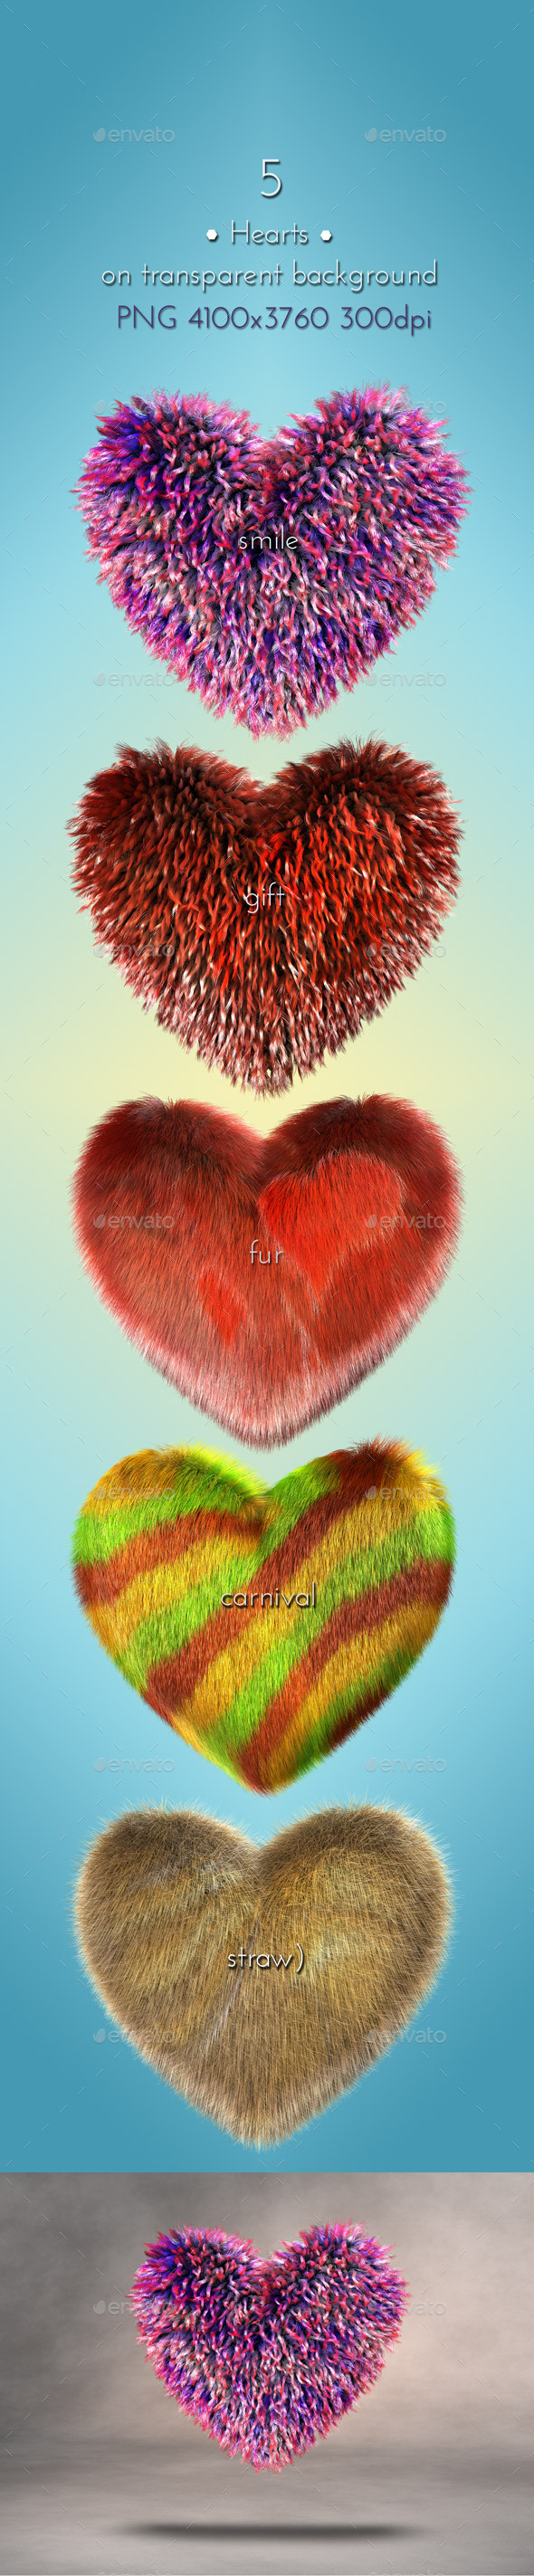 GraphicRiver Gift Hearts 3D 9325486